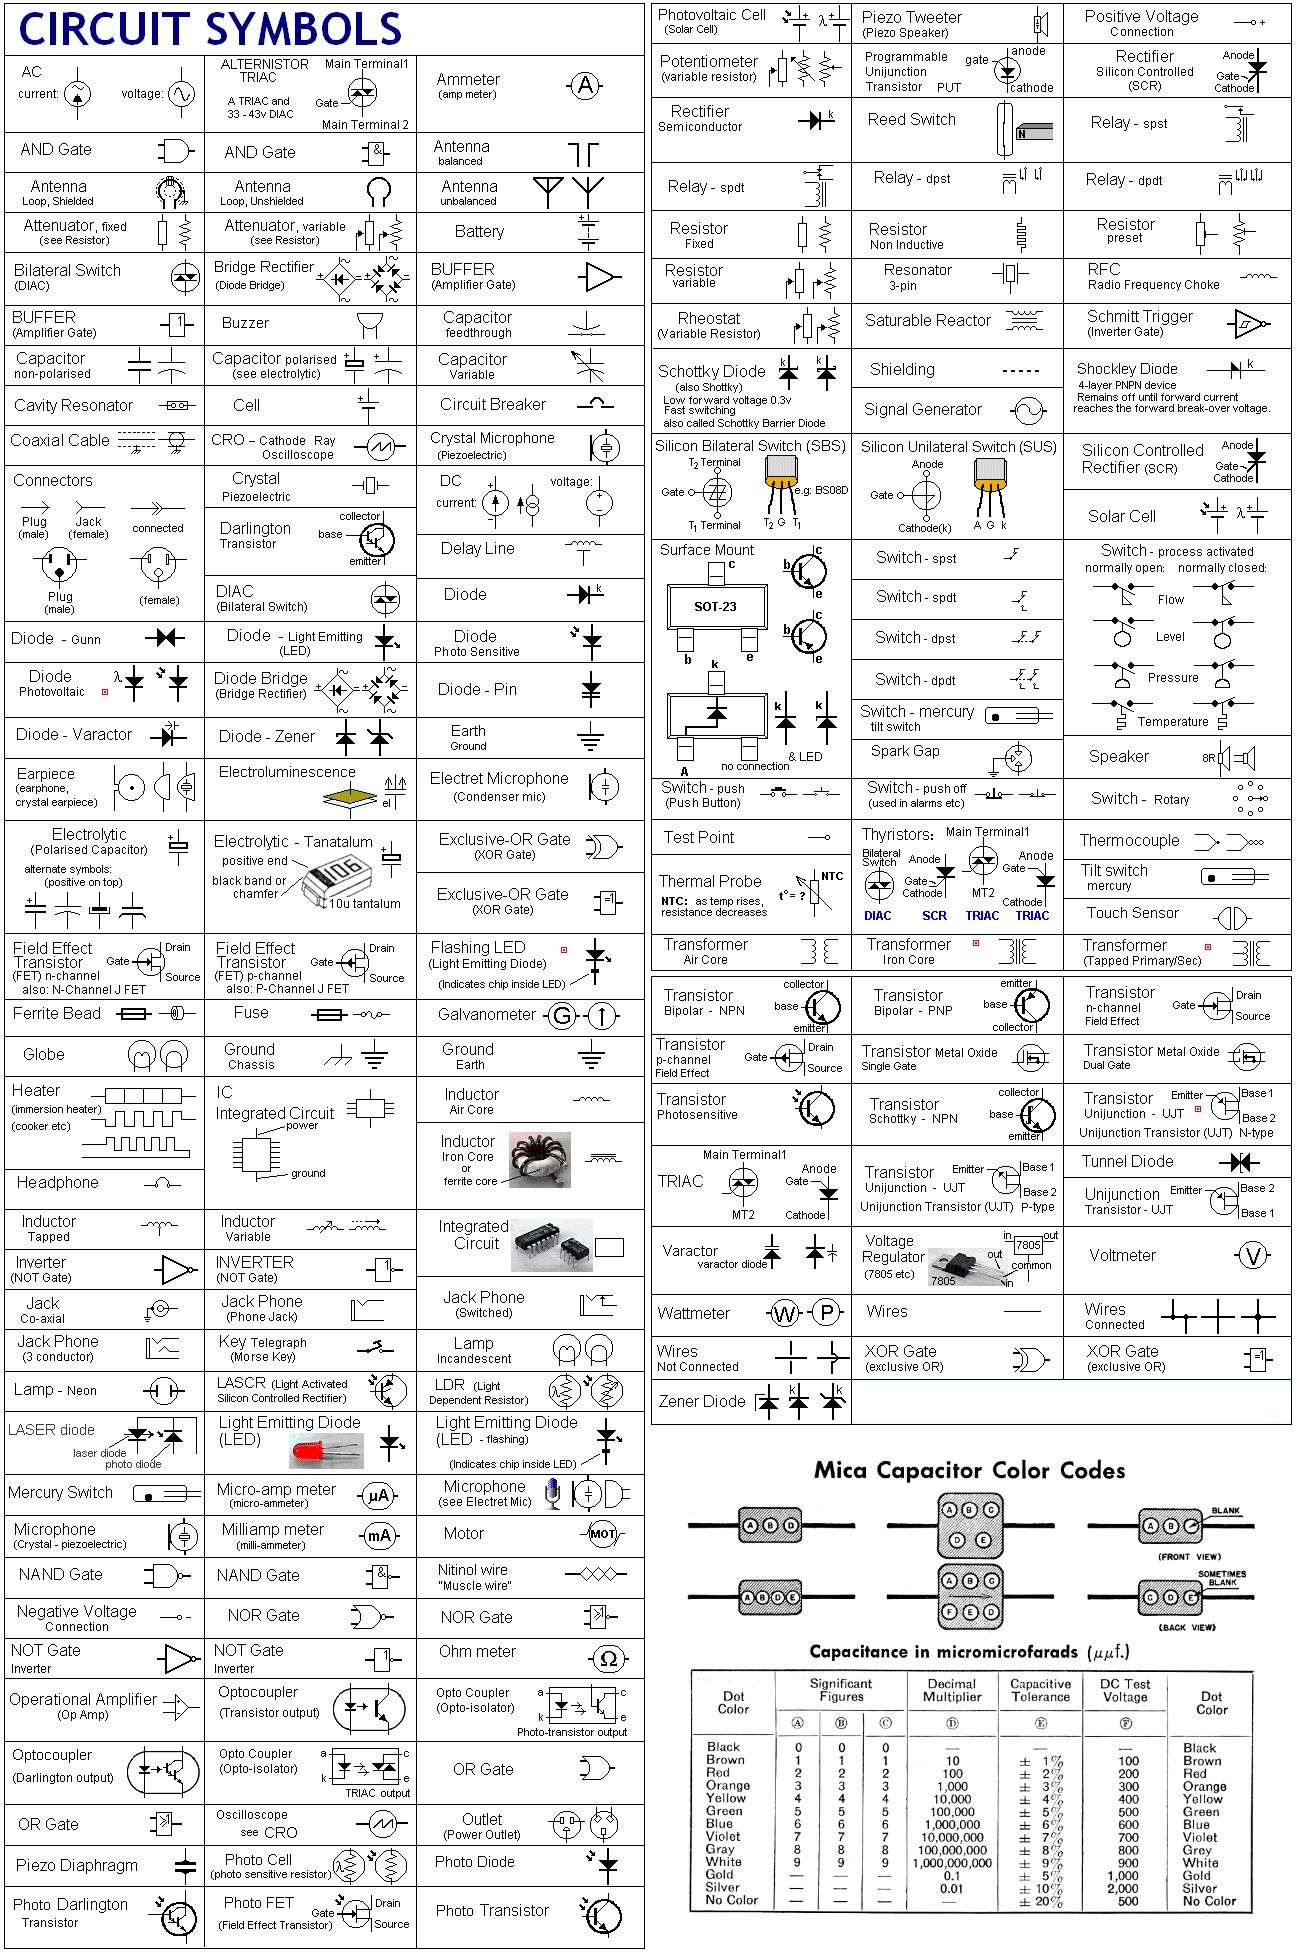 6c64fb84c8e162b28334051891c290f4 schematic symbols chart electric circuit symbols a considerably wiring diagram symbols chart at n-0.co